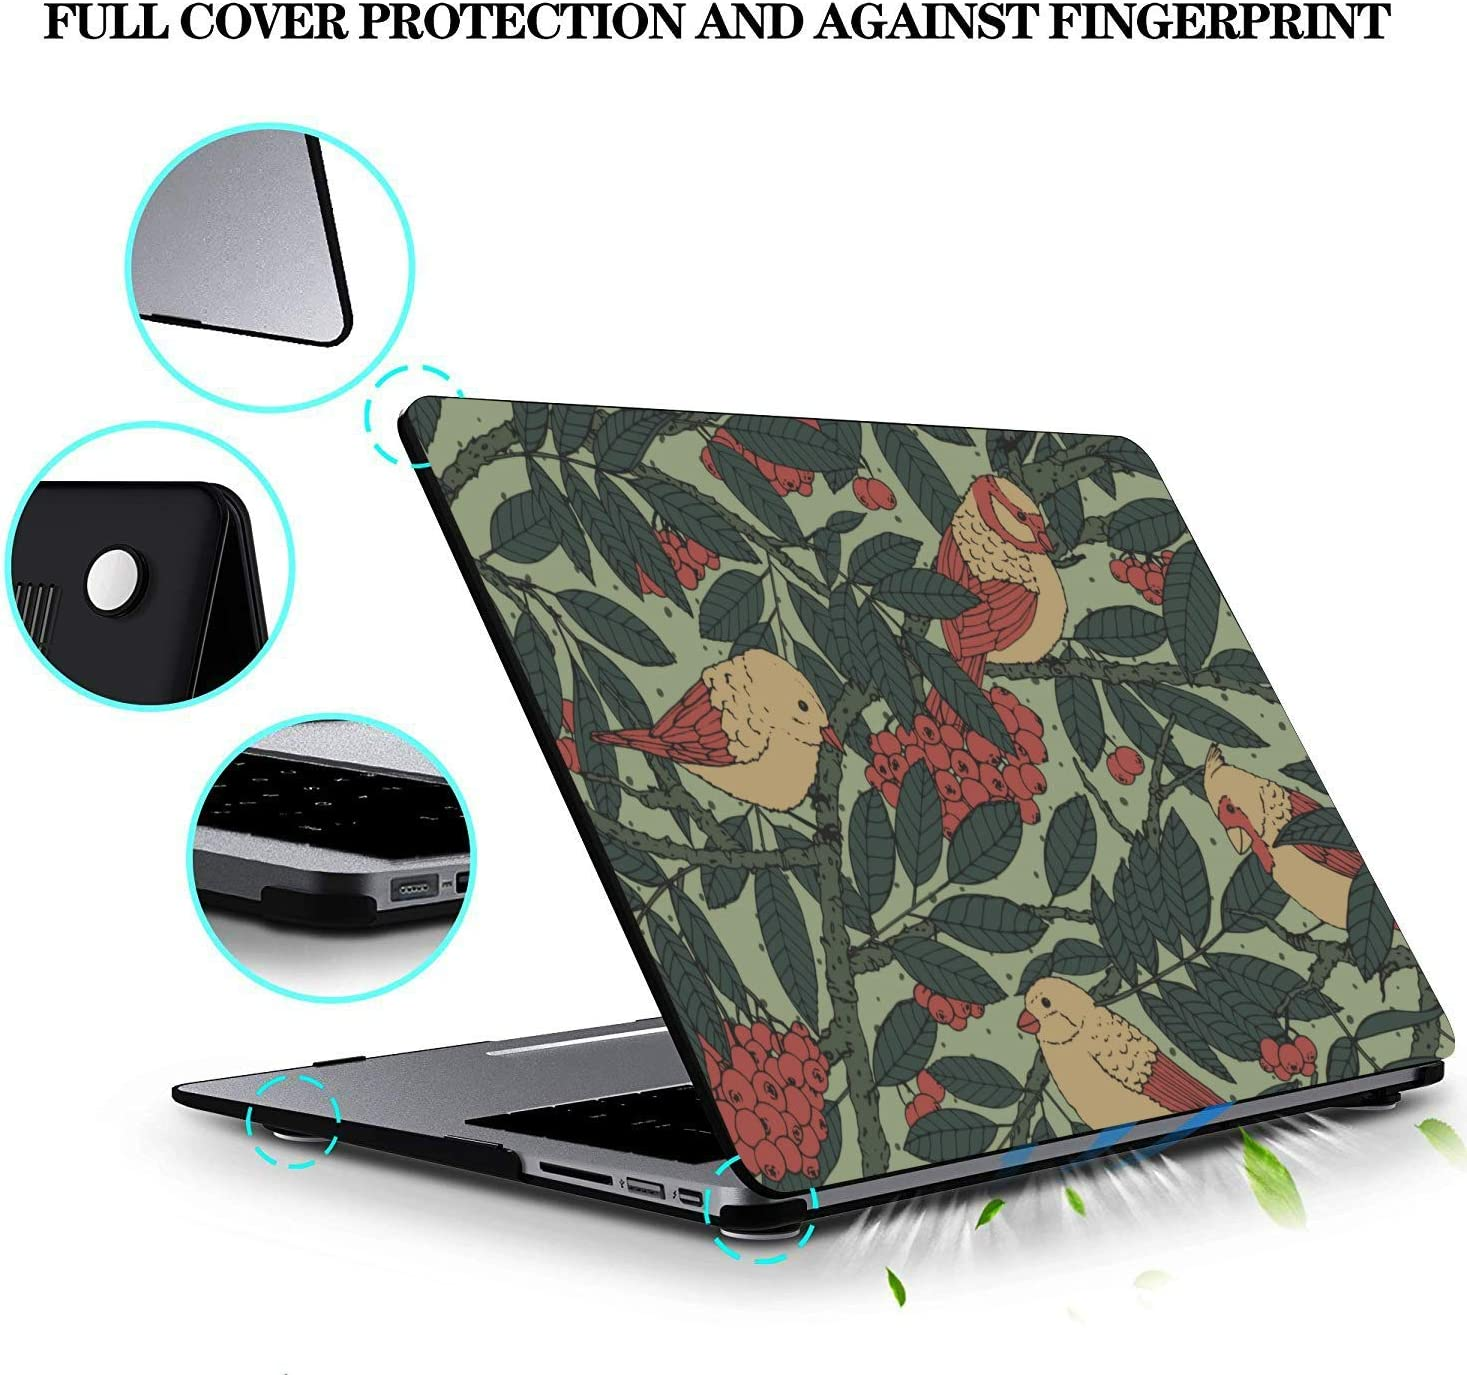 Mac Book Air Covers Yellow Green Leaf Pheasant Flower Plastic Hard Shell Compatible Mac Air 11 Pro 13 15 11 MacBook Air Case Protection for MacBook 2016-2019 Version